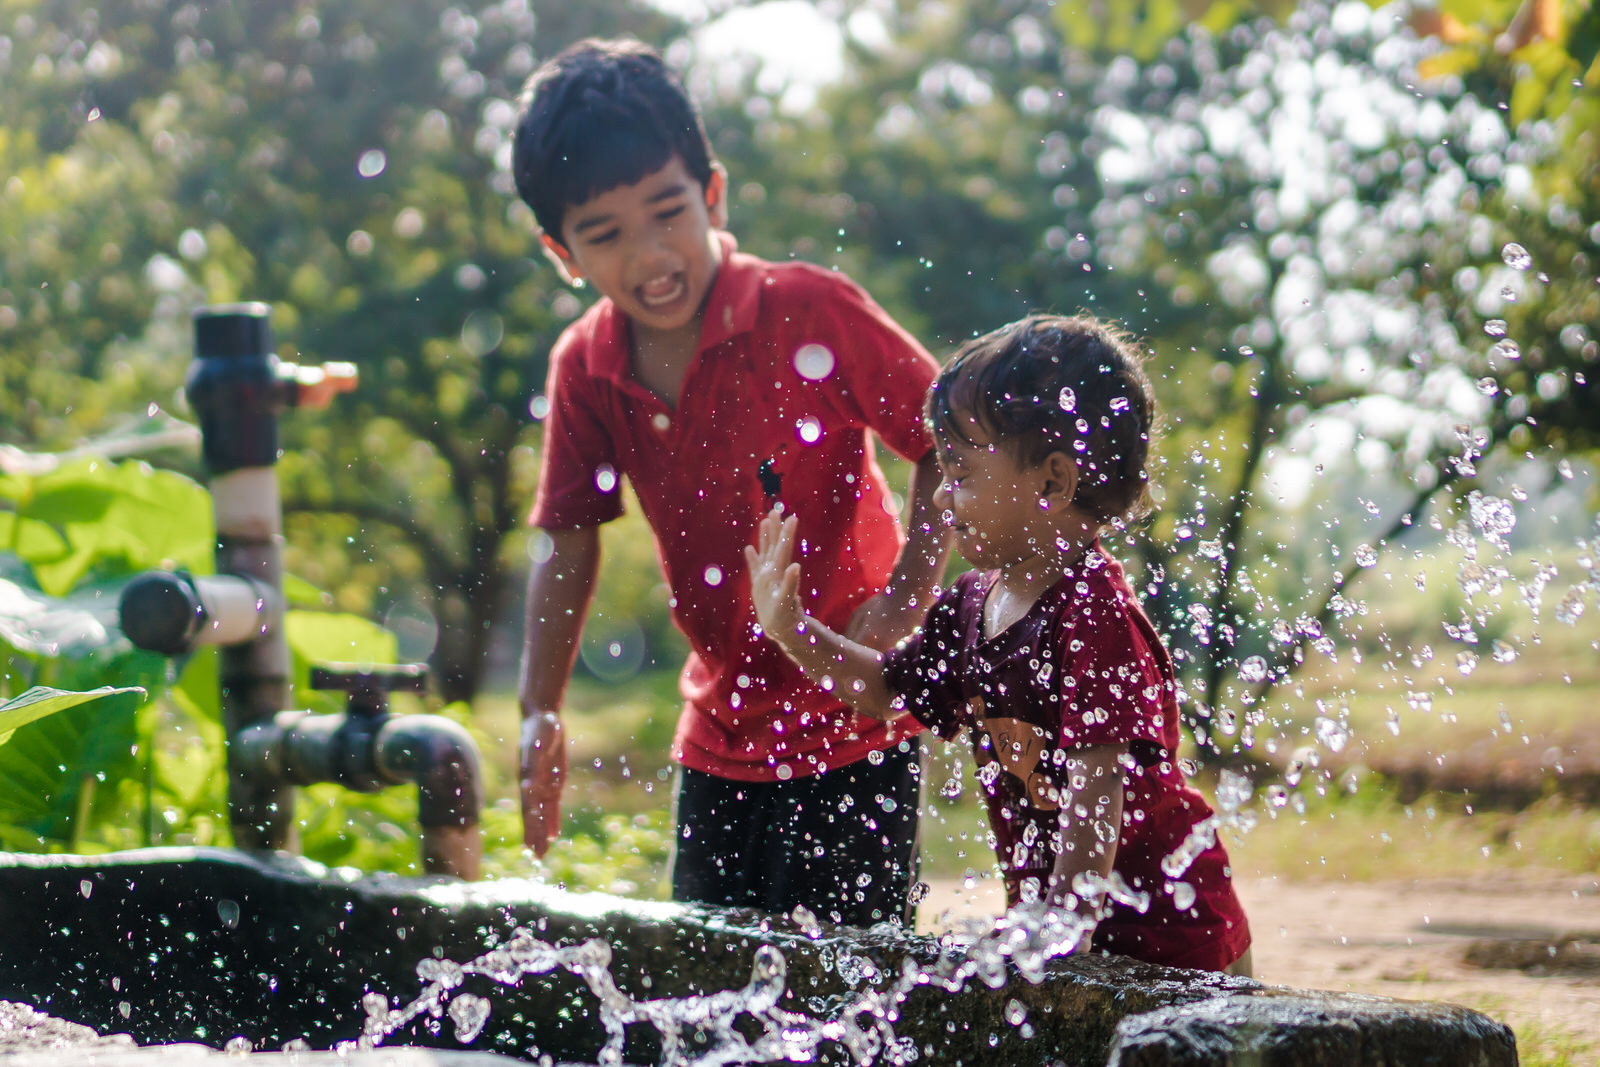 23122017-Boys-Playing-Water-Tank-308.jpg